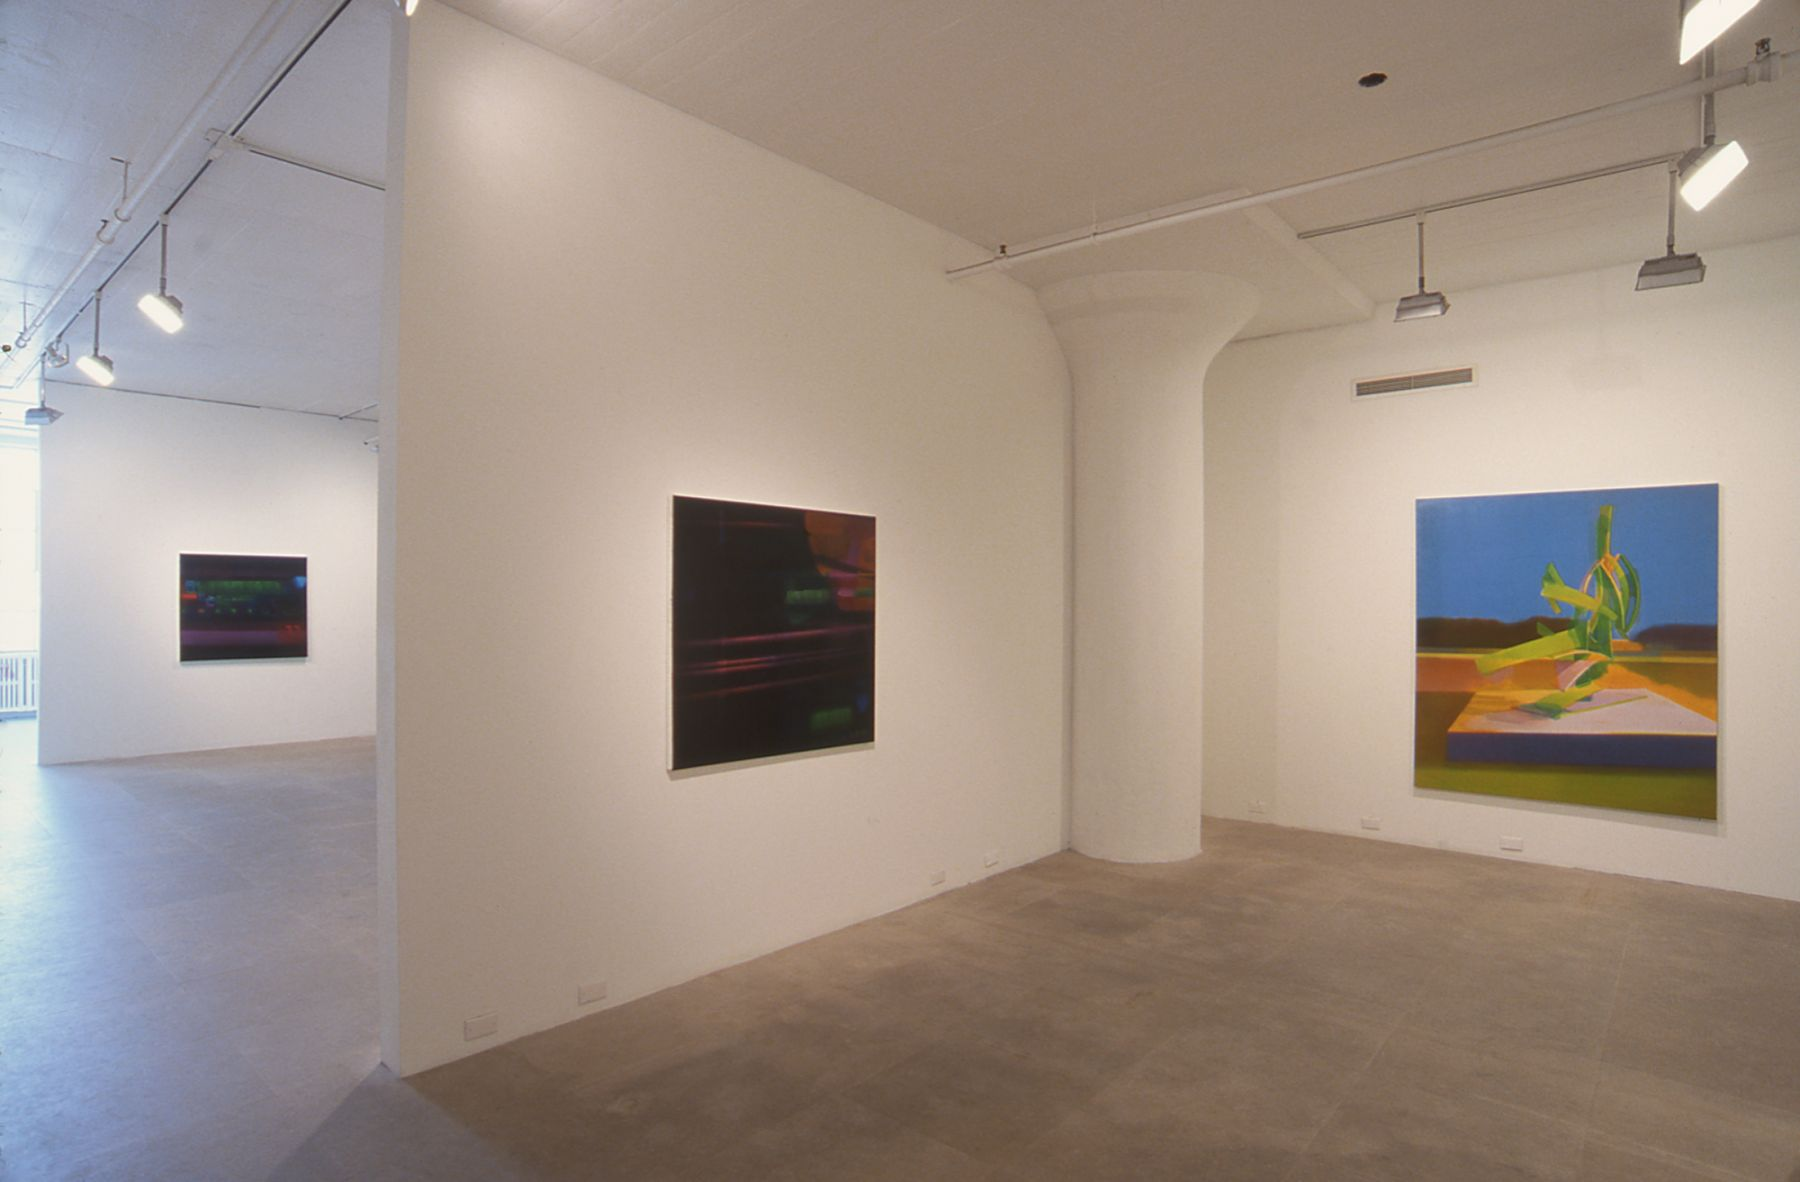 Installation view, August Evening Walk Out, Greene Naftali, New York, 2003